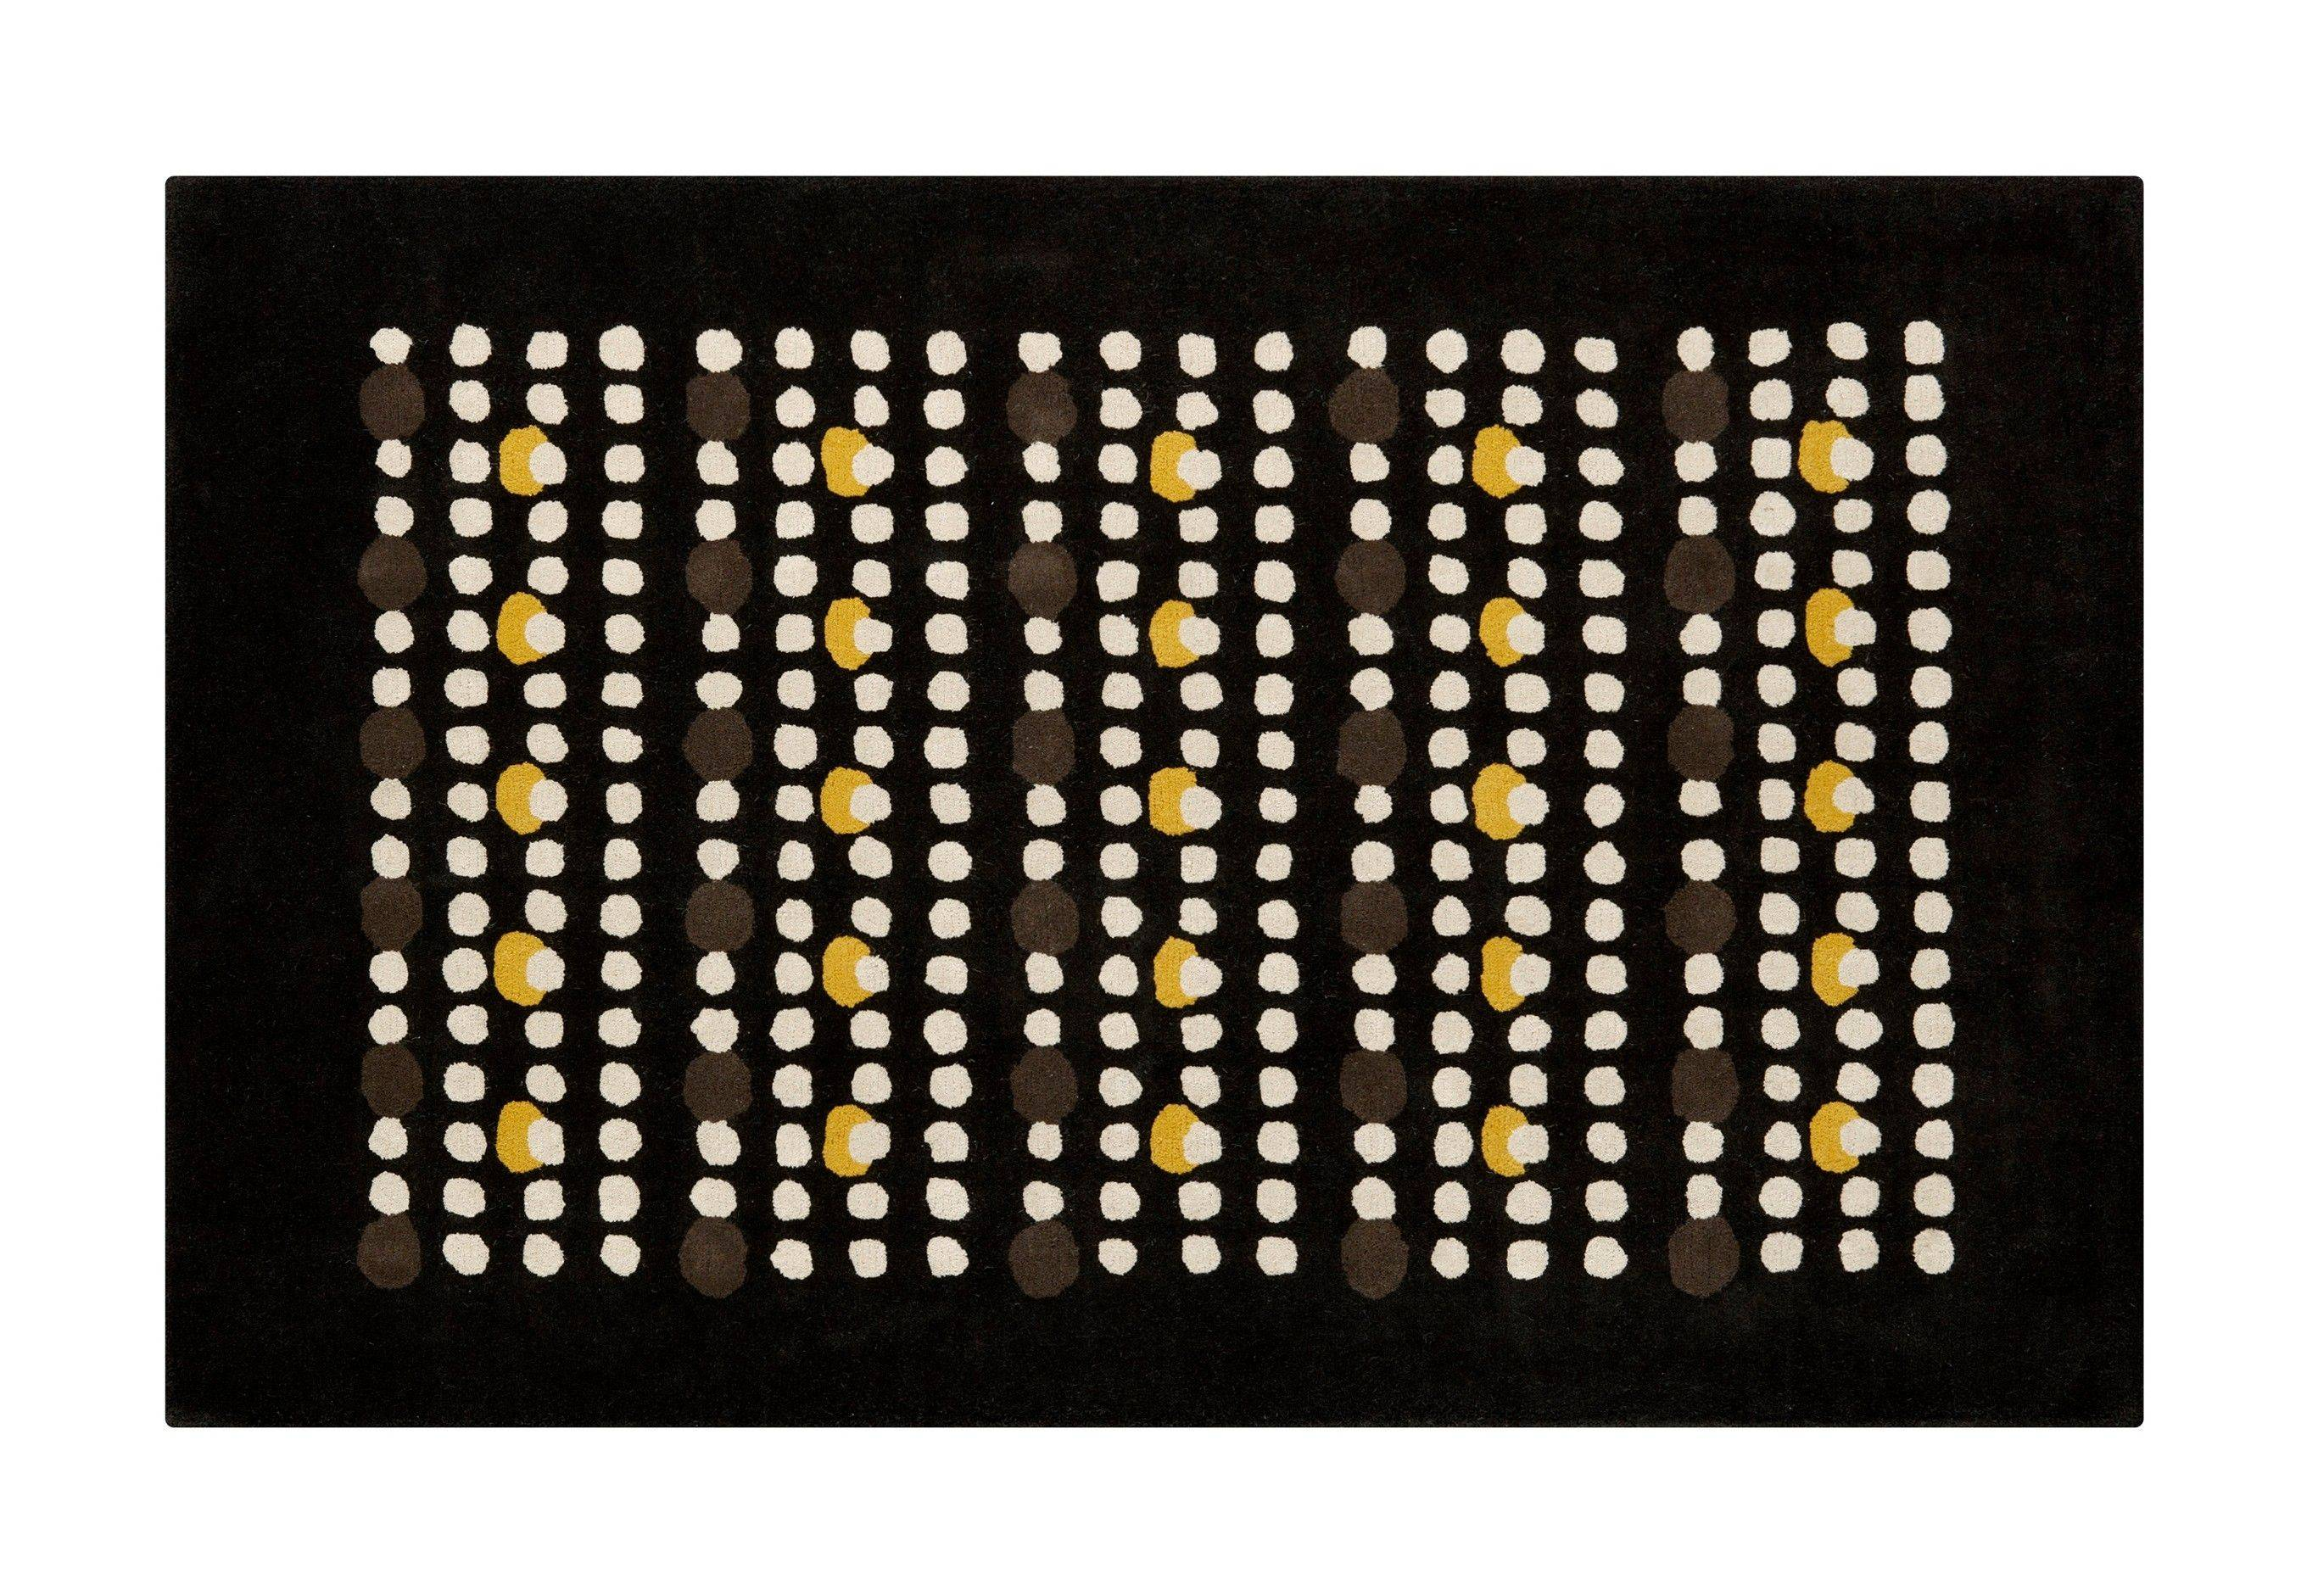 The Bingo Rug from CB2 boasts a black, white and yellow graphic resembling city lights at night.